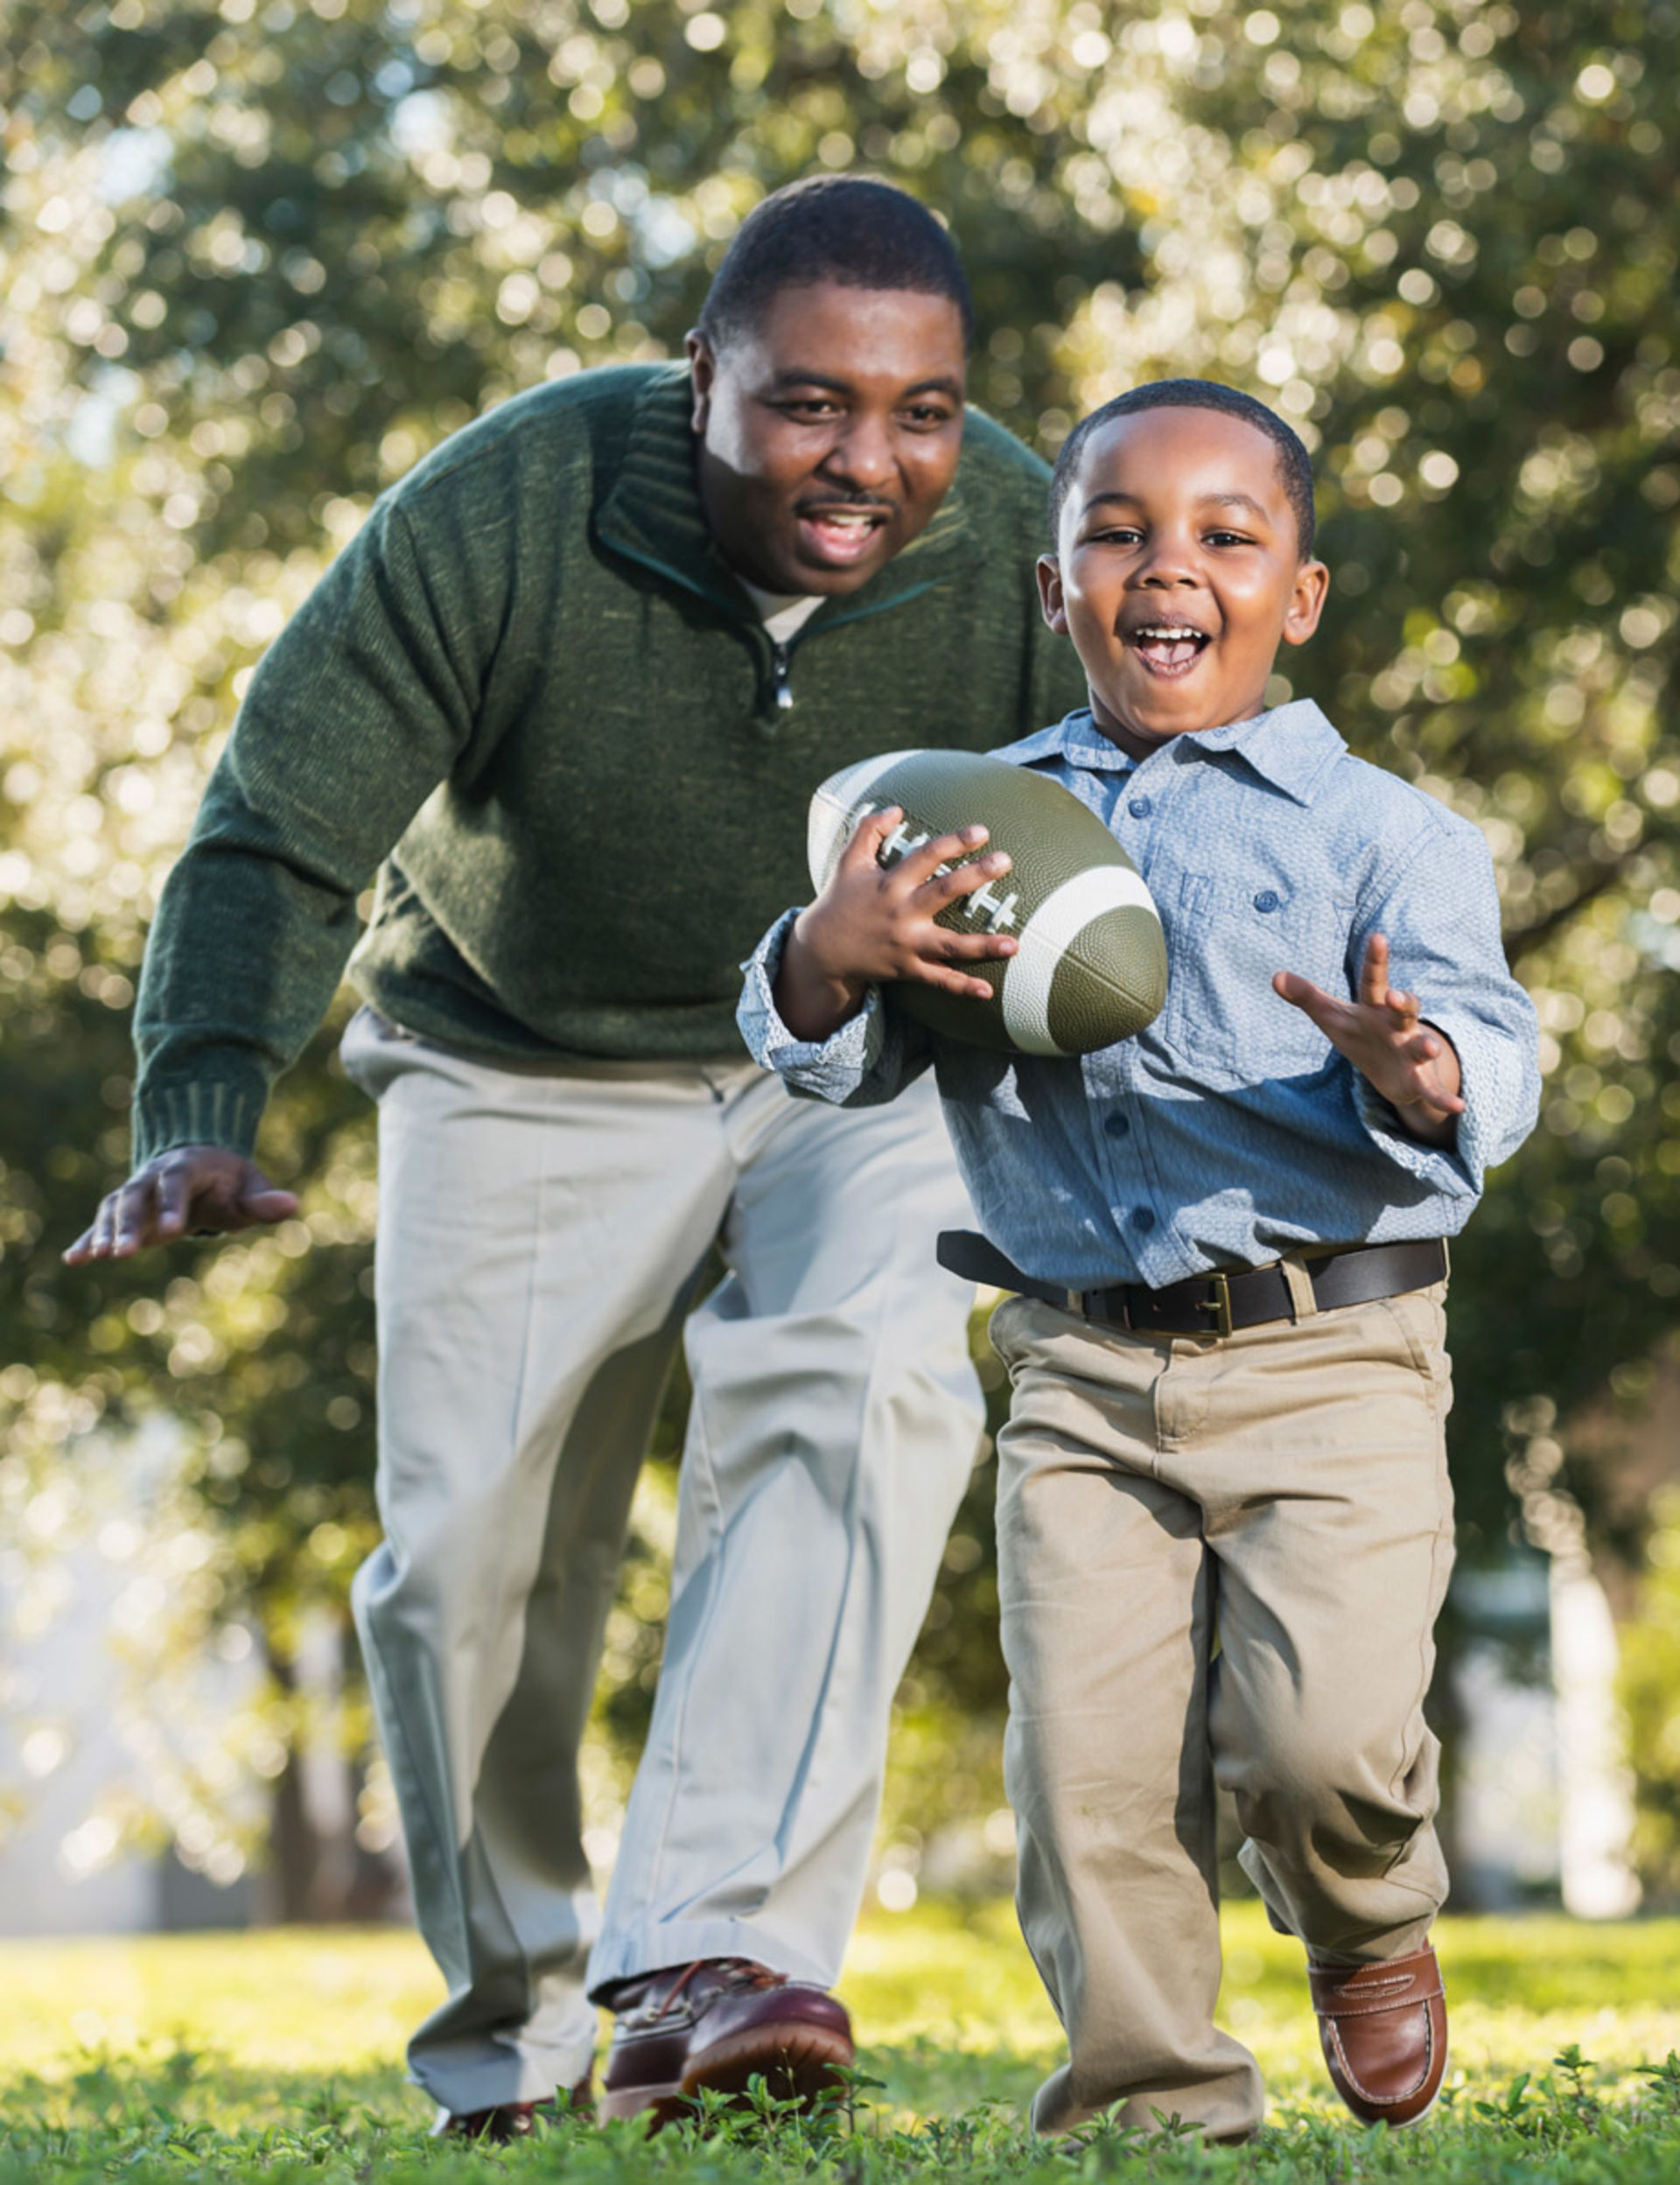 An African-American father and young son play football on their lawn.